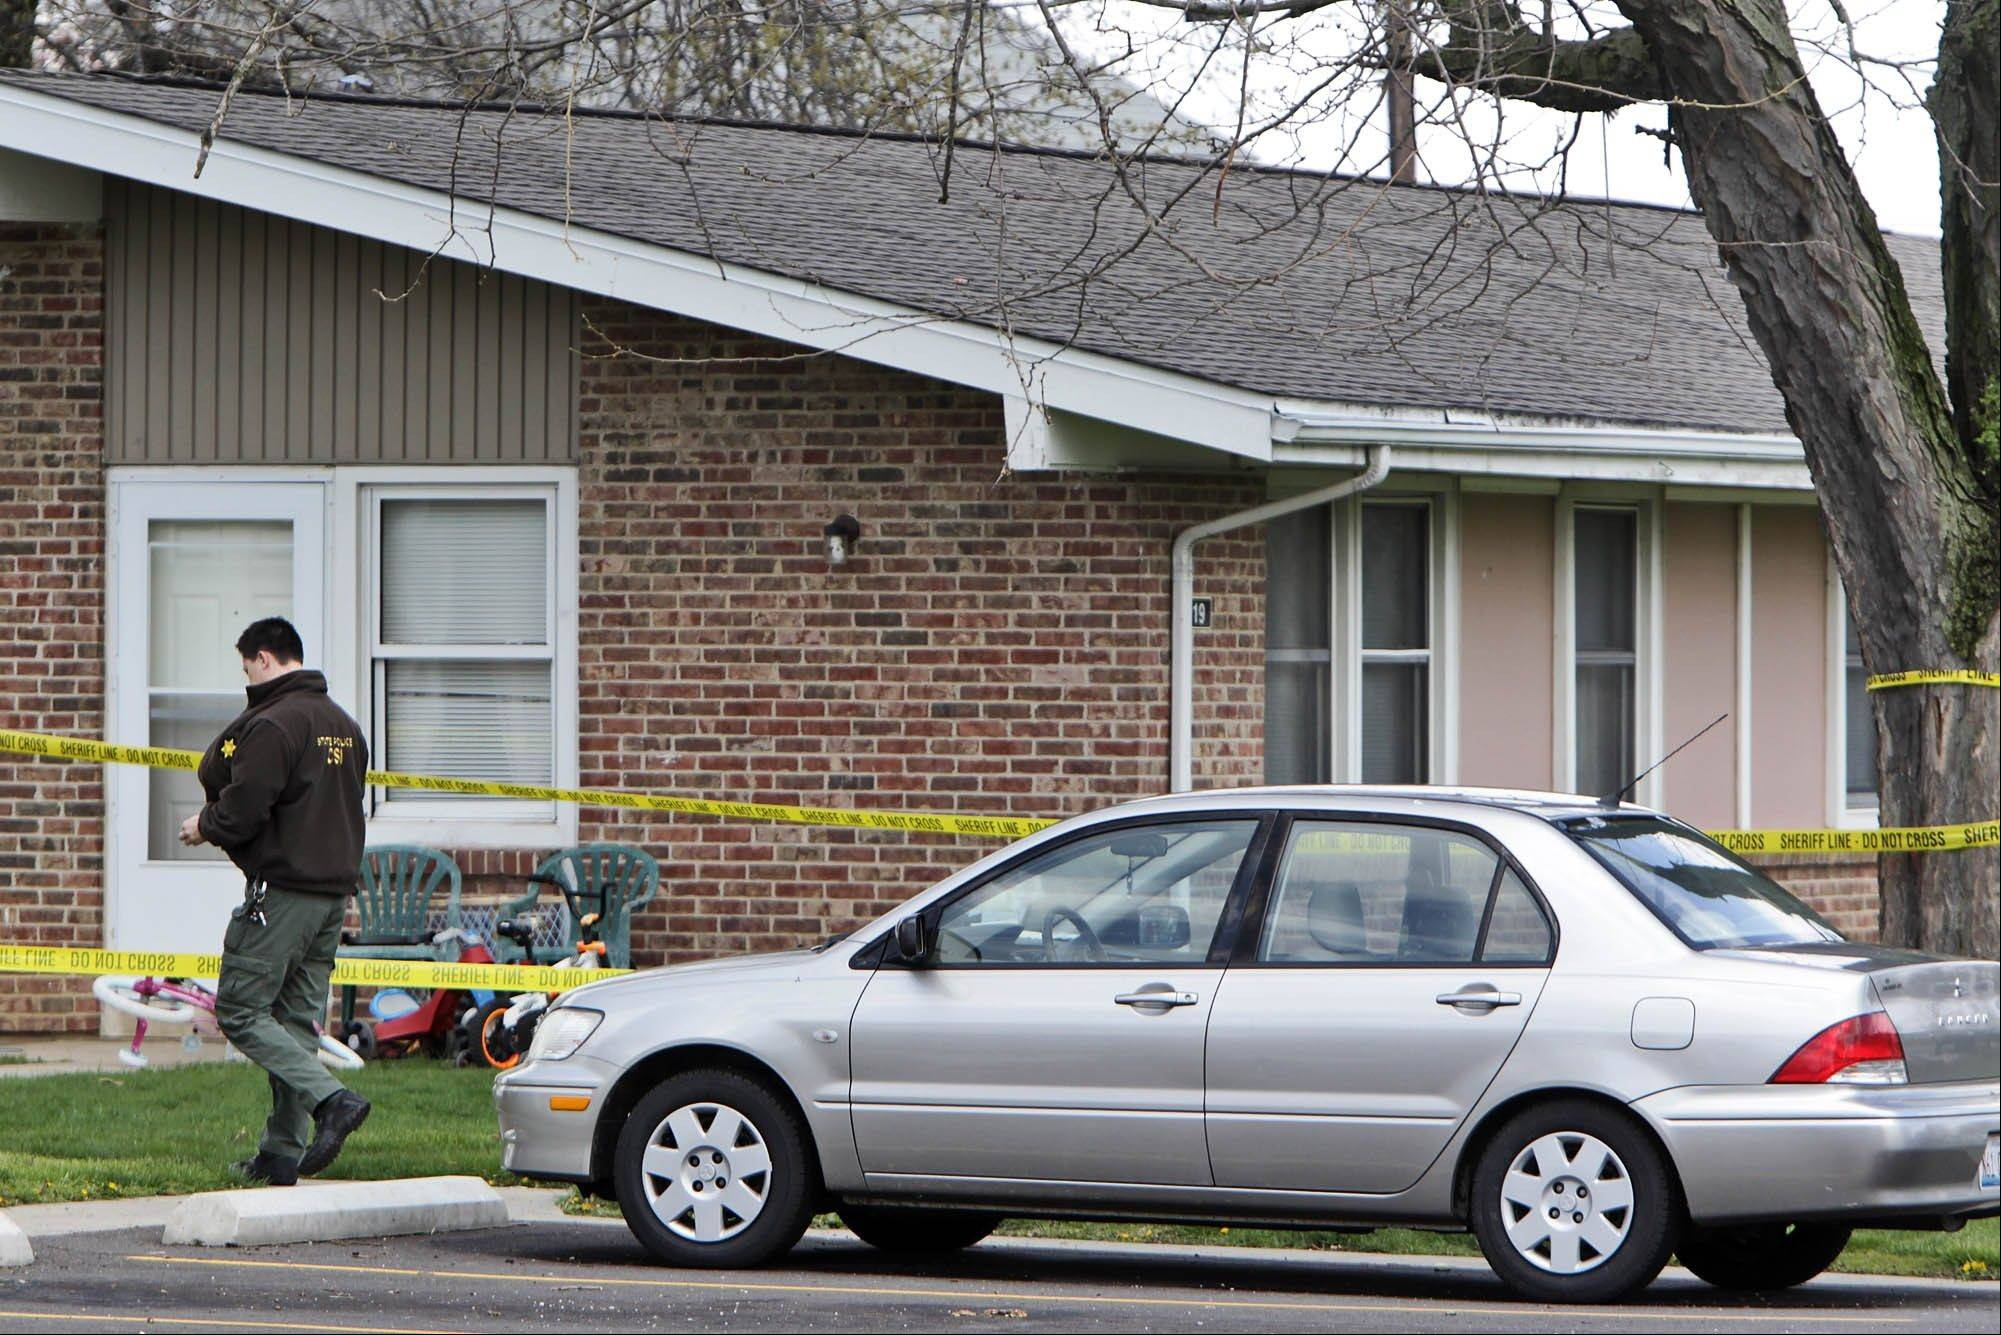 An Illinois State Police investigator walks past the housing complex where 5 people were killed Wednesday.